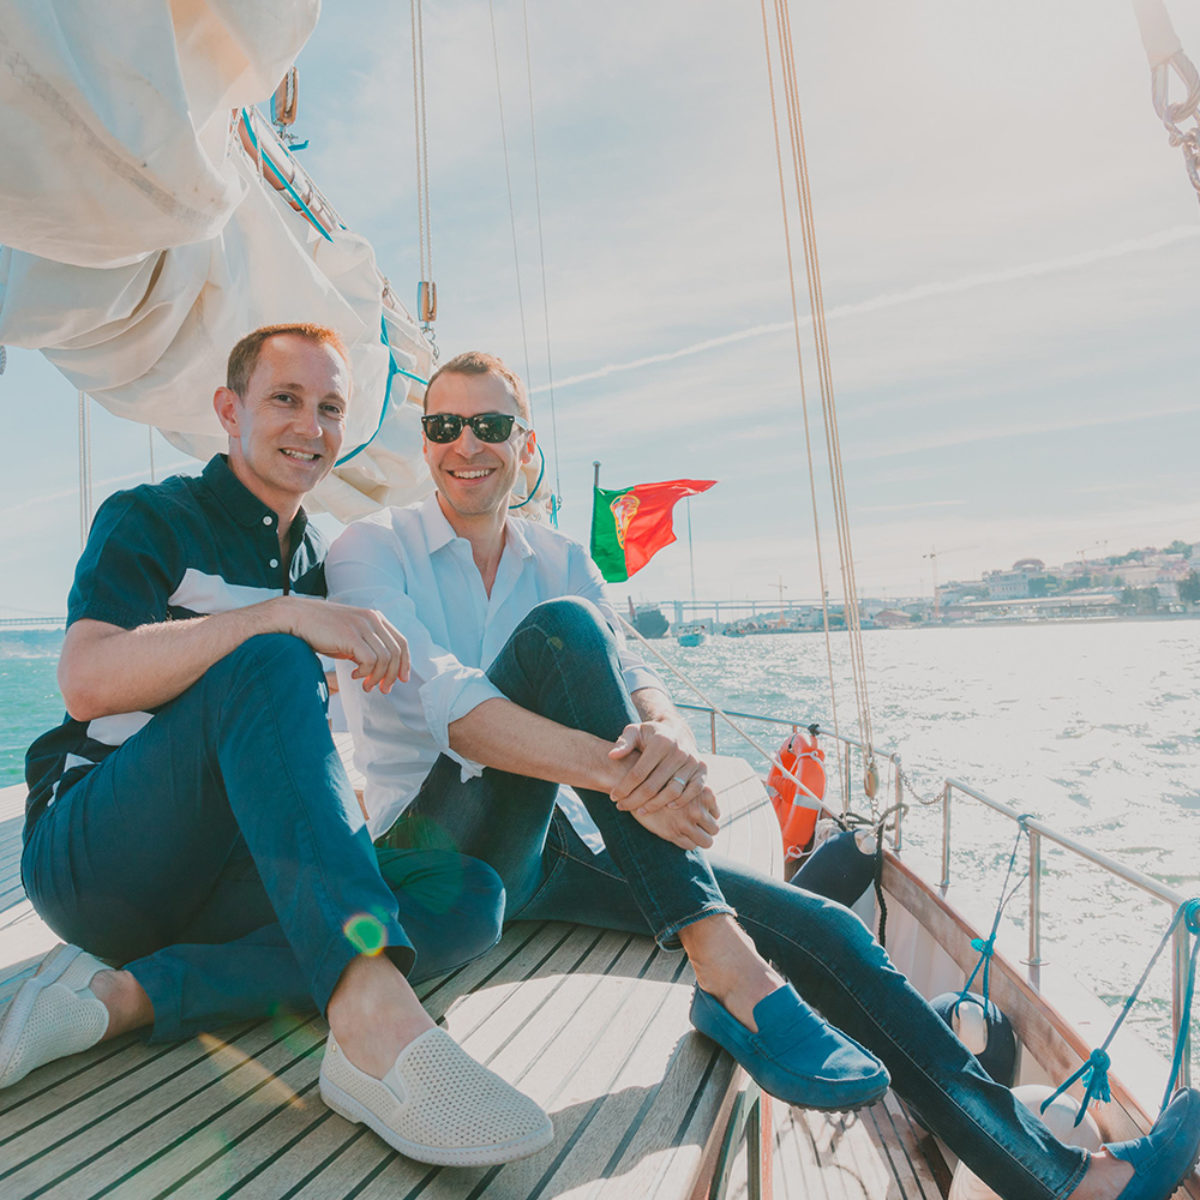 Gay couple on a boat at Tagus River, Lisbon, Portugal